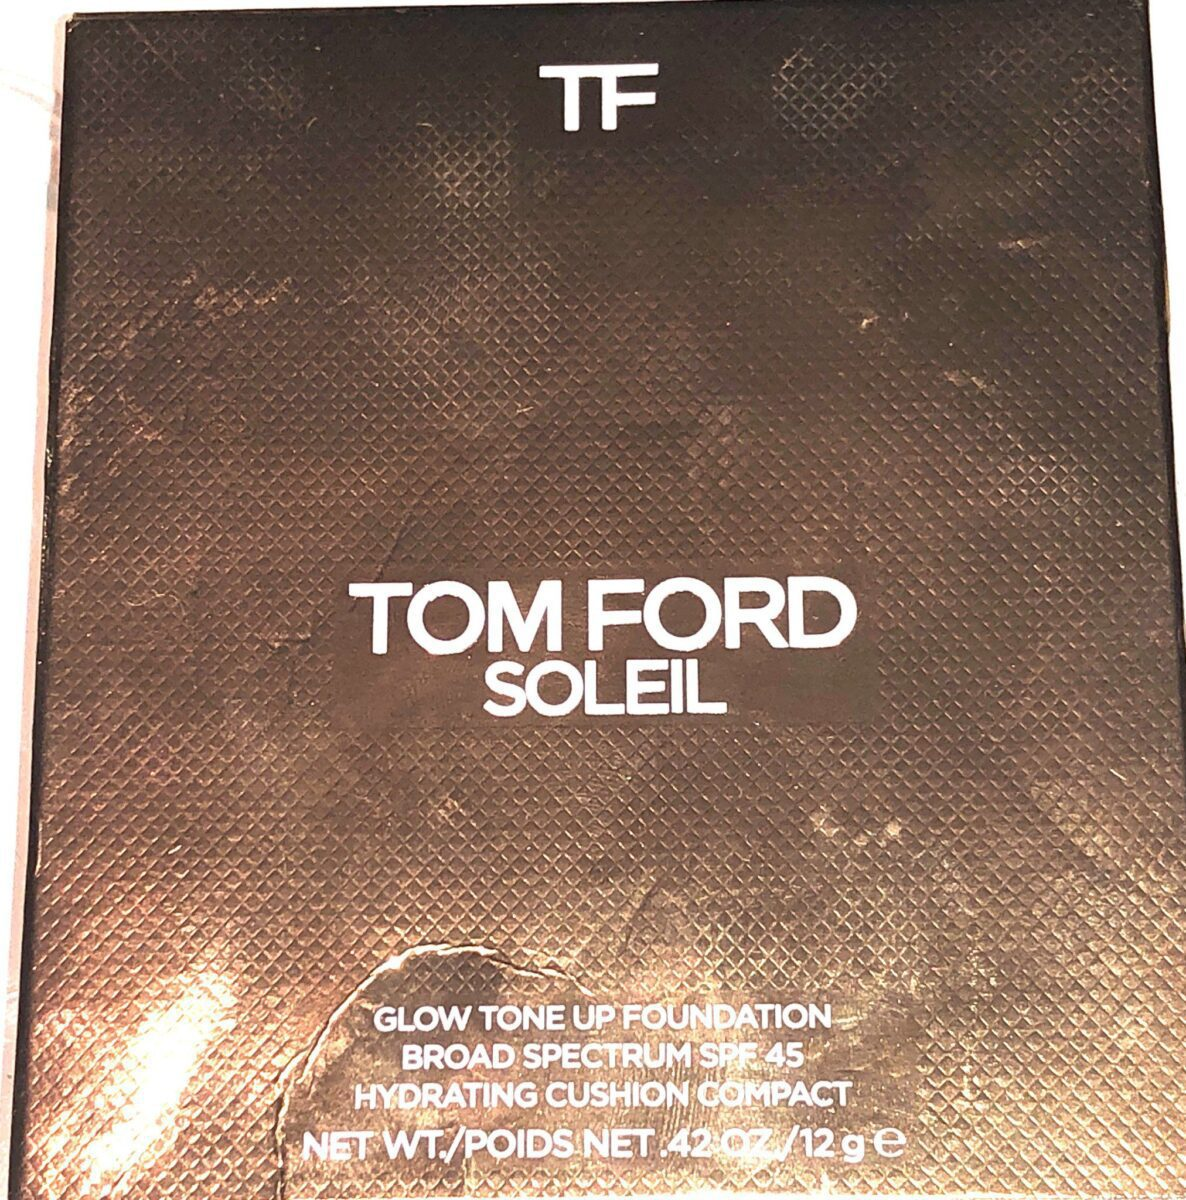 TOM FORD SOLEIL GLOW HYDRATING CUSHION FOUNDATION COMPACT OUTER BOX